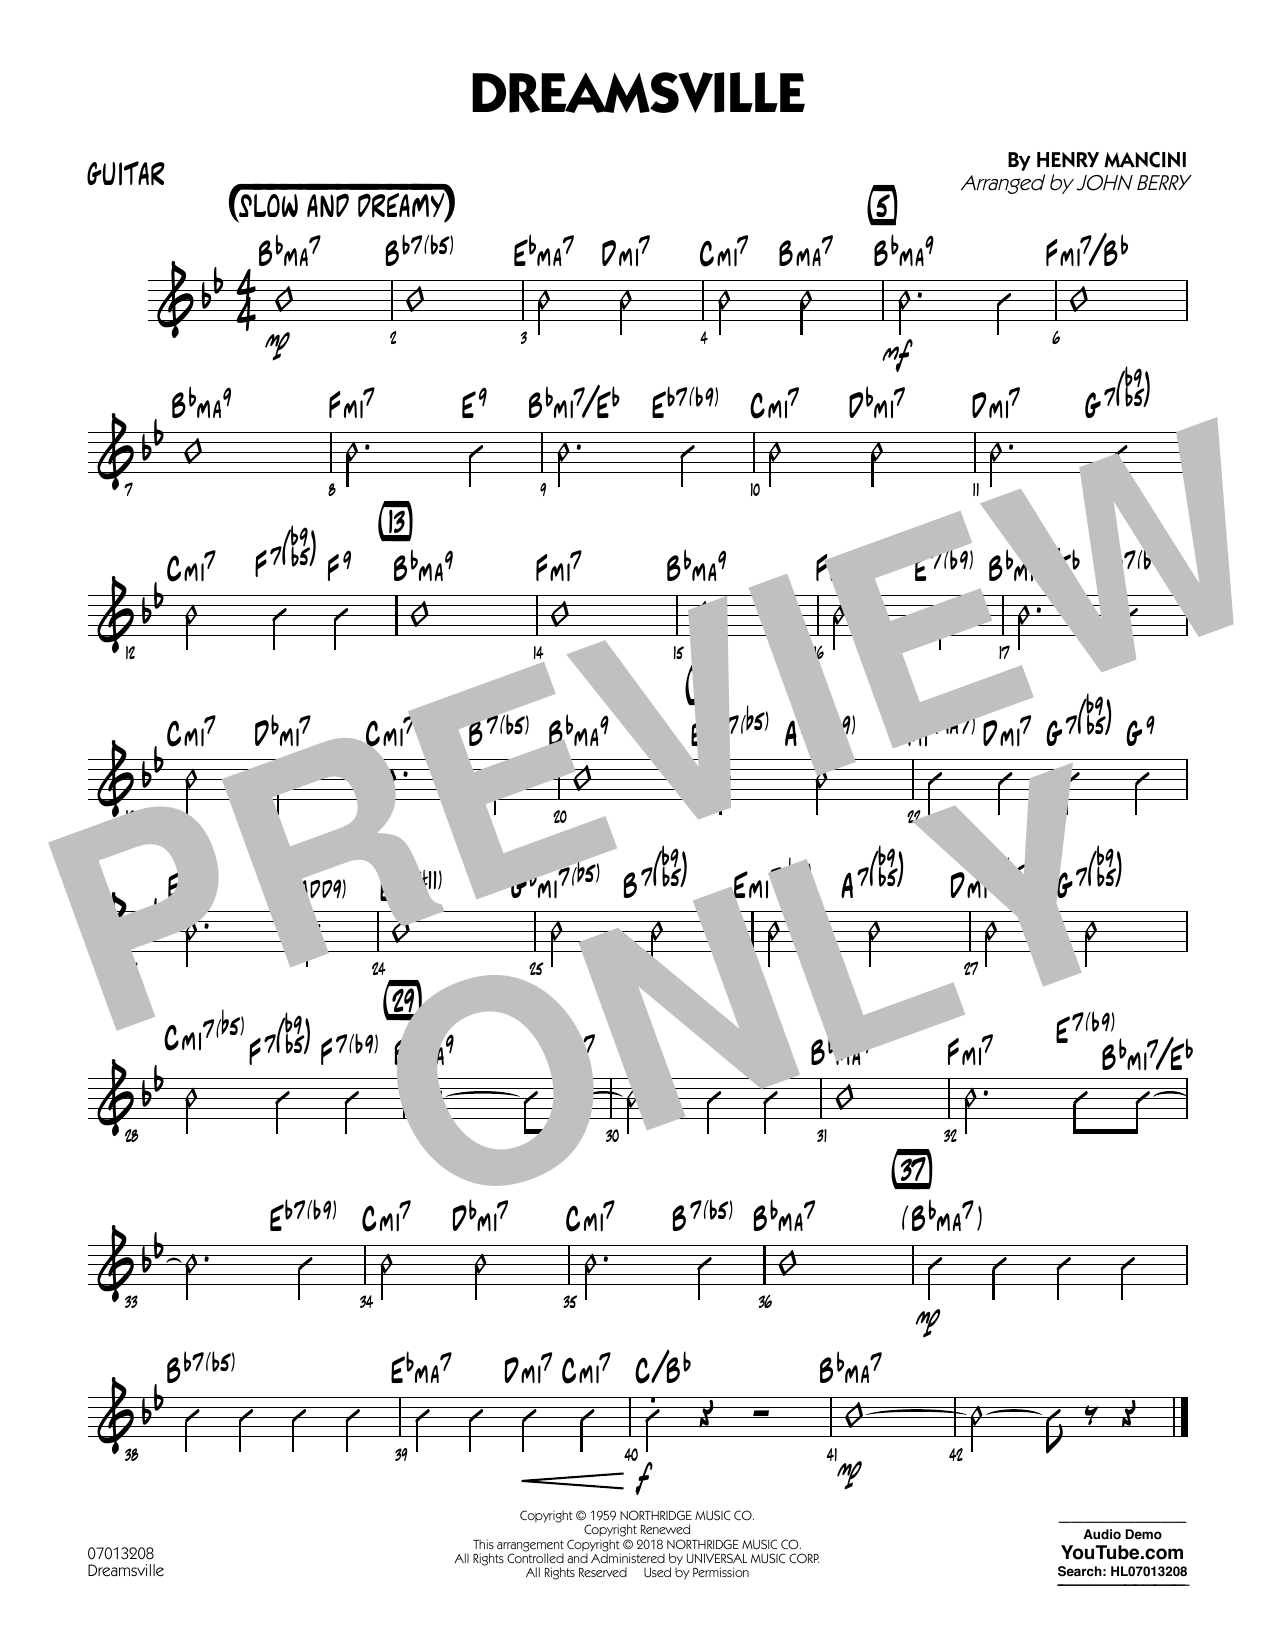 John Berry Dreamsville - Guitar sheet music notes and chords. Download Printable PDF.